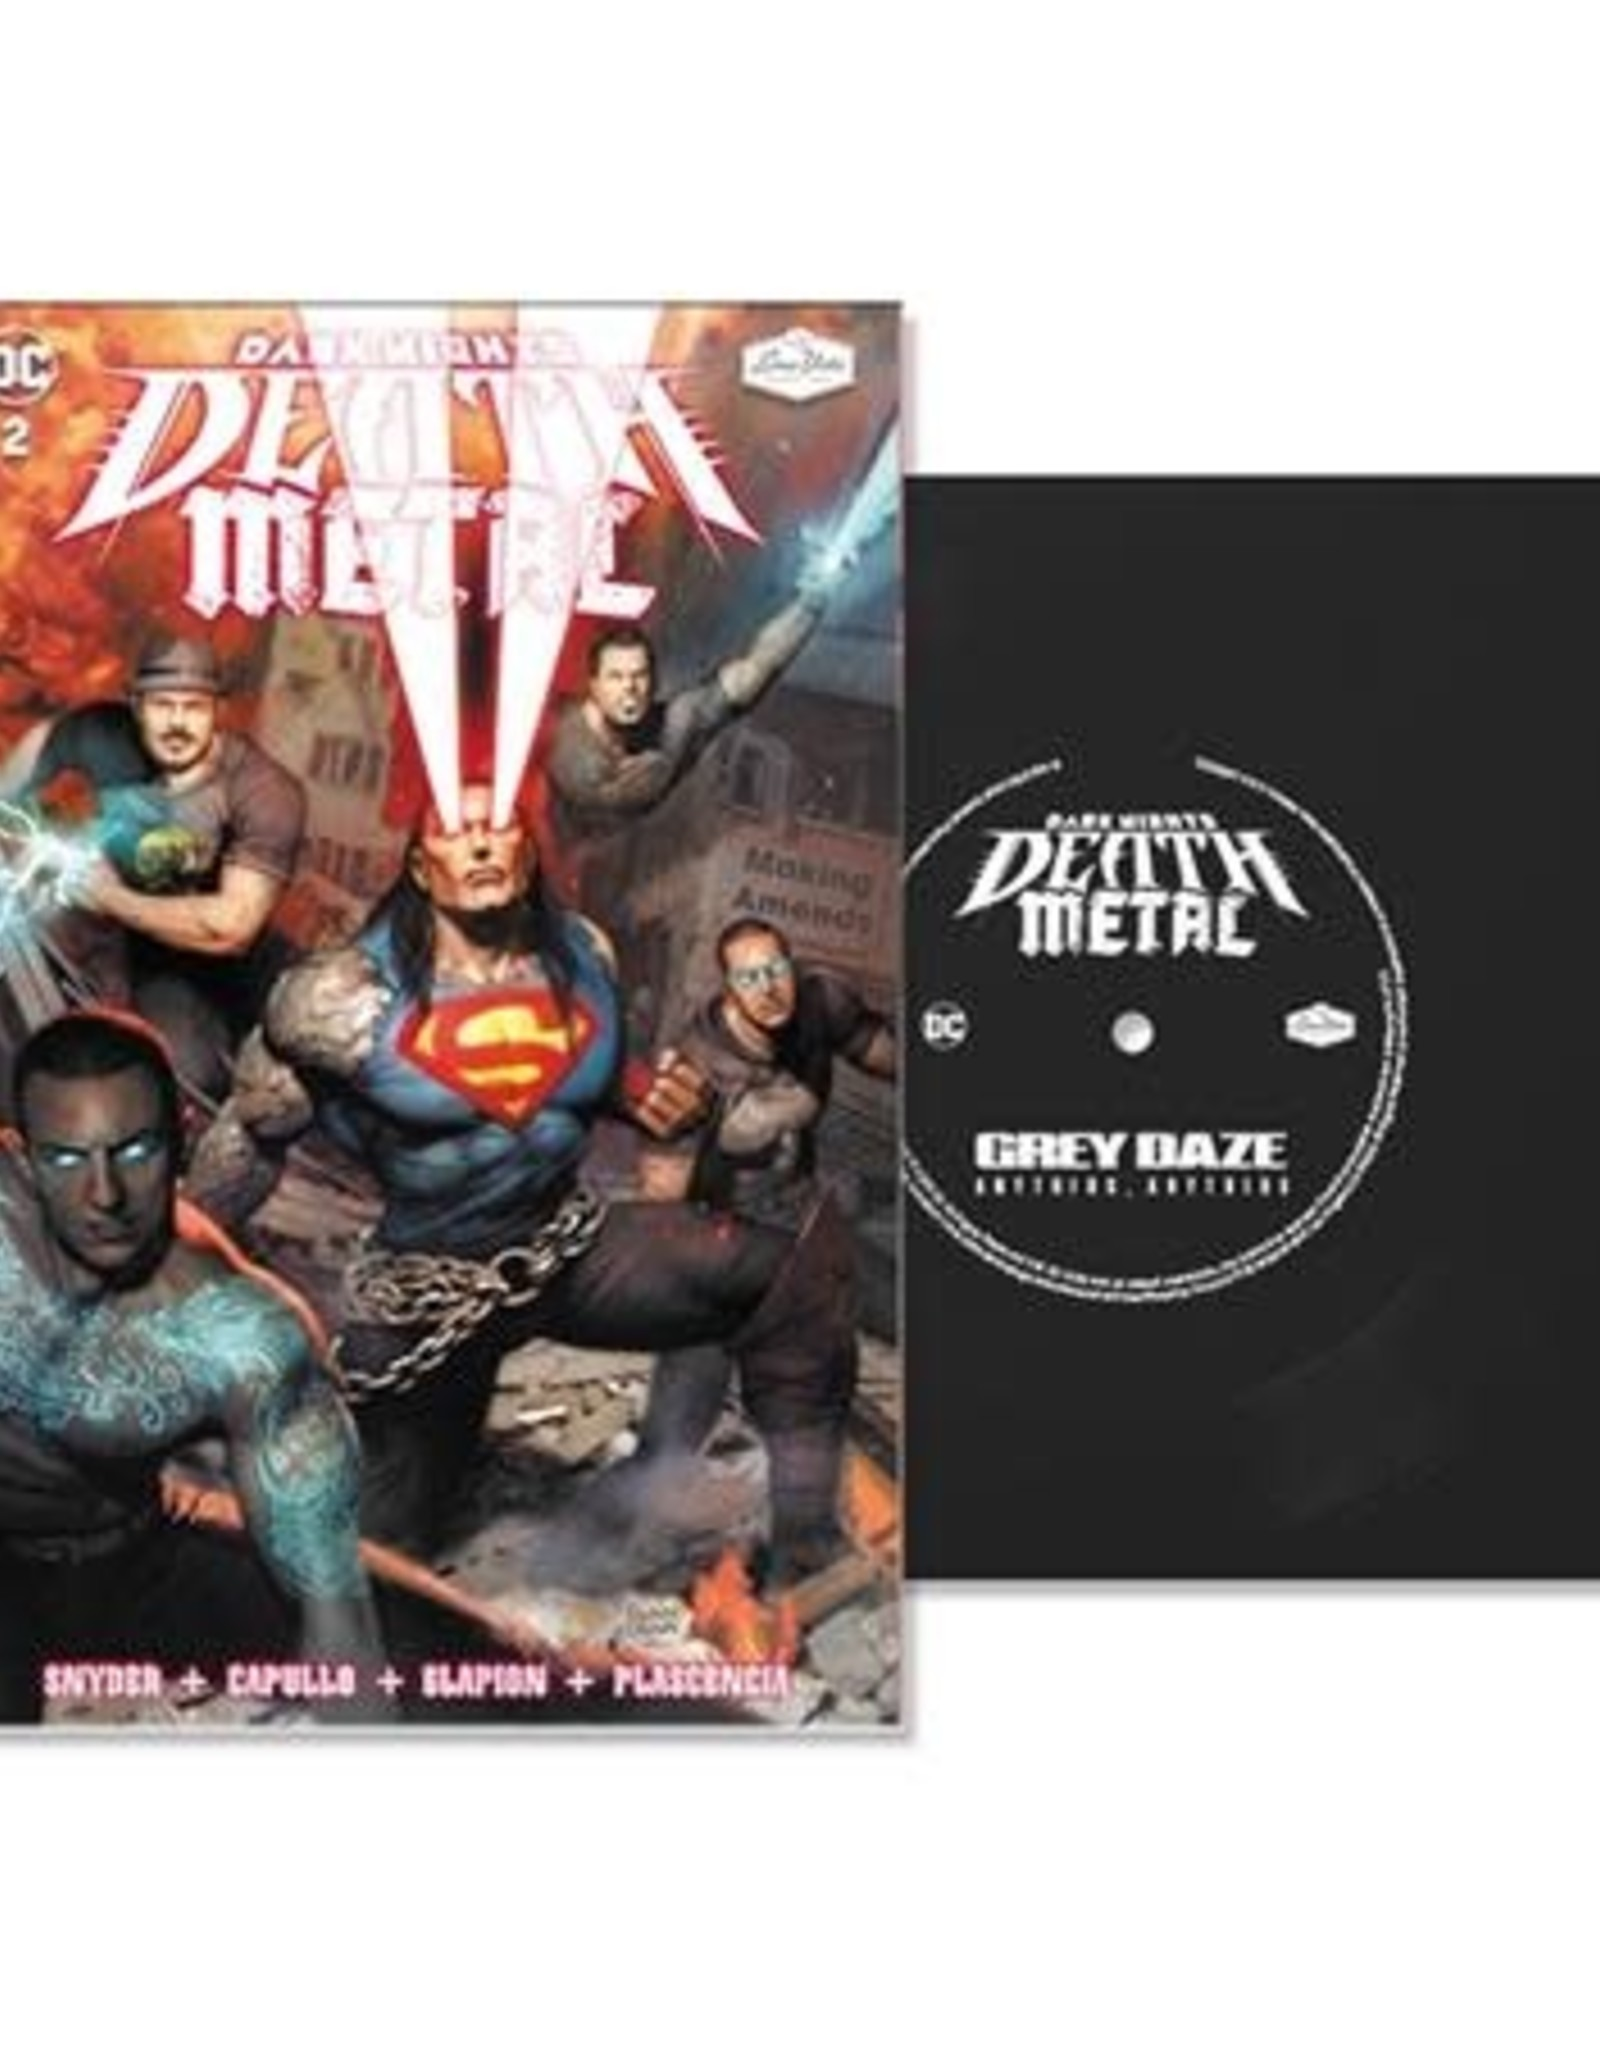 DC Comics Dark Nights Death Metal #2 Soundtrack Spec ED Grey Daze With Flexi Single Featuring Anything, Anything